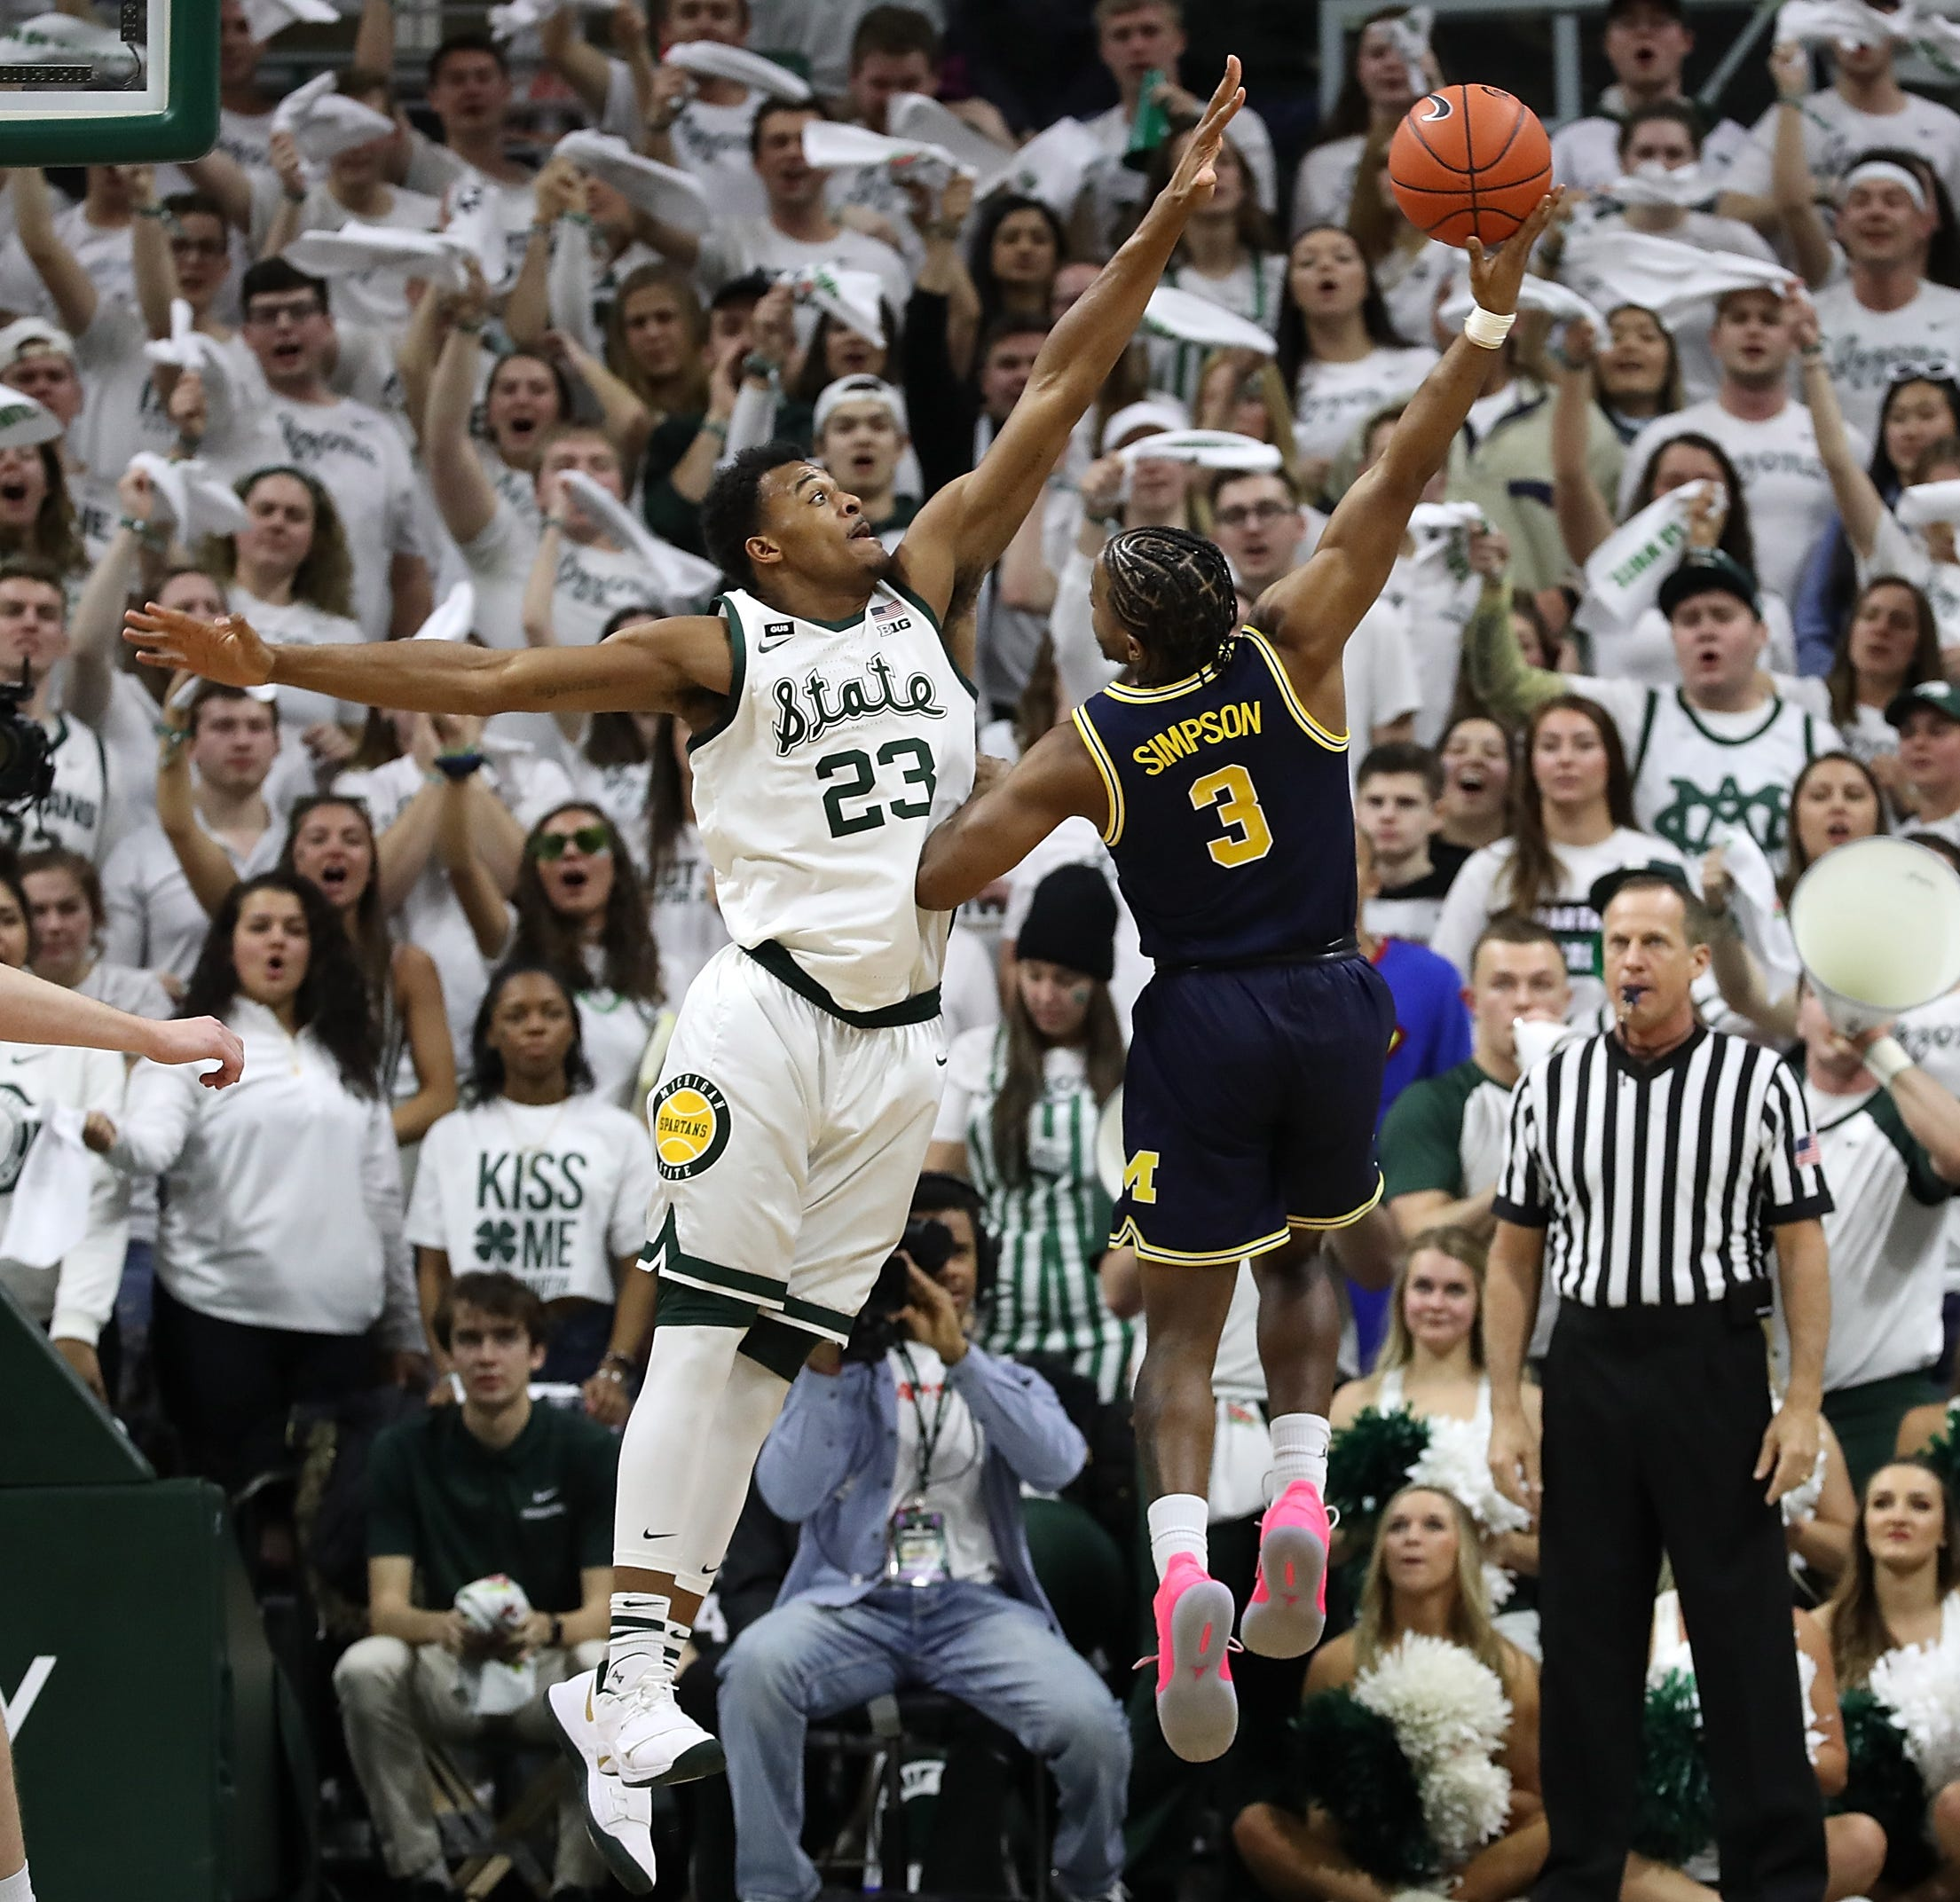 Michigan guard Zavier Simpson attempts a shot around Michigan State's Xavier Tillman during the first half at Breslin Center on March 9, 2019 in East Lansing.